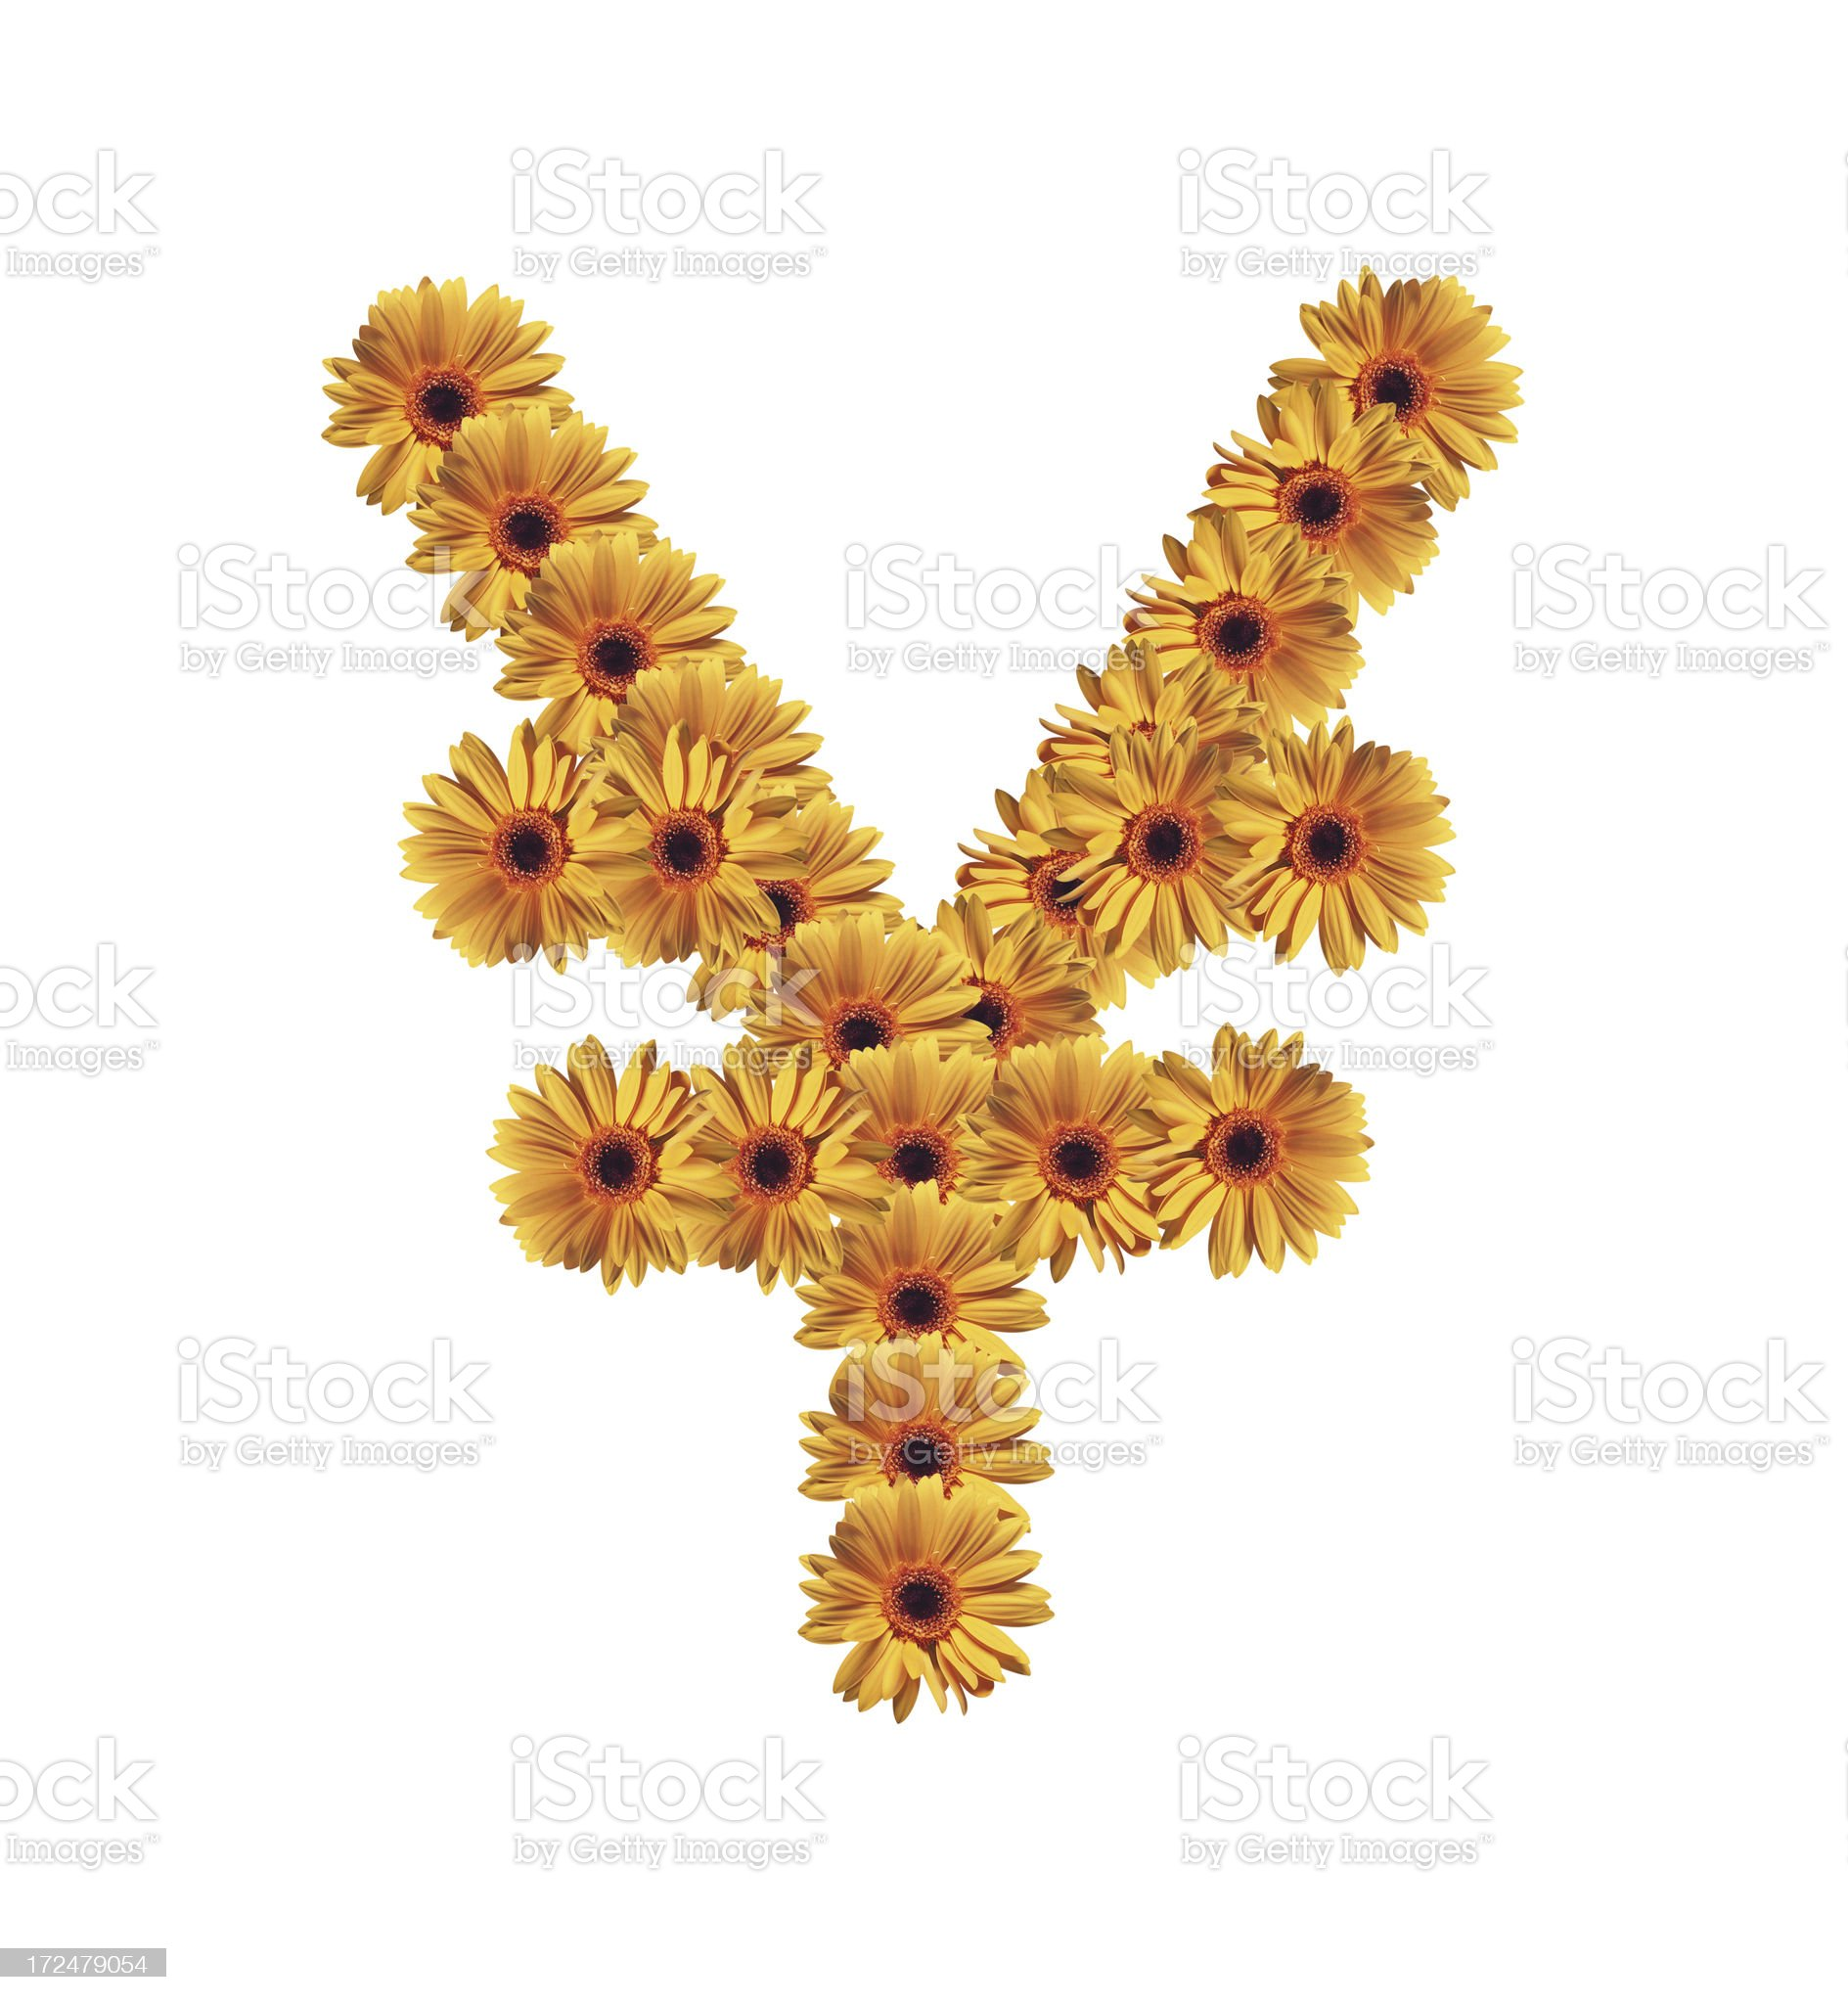 Flower Yen Symbol royalty-free stock photo